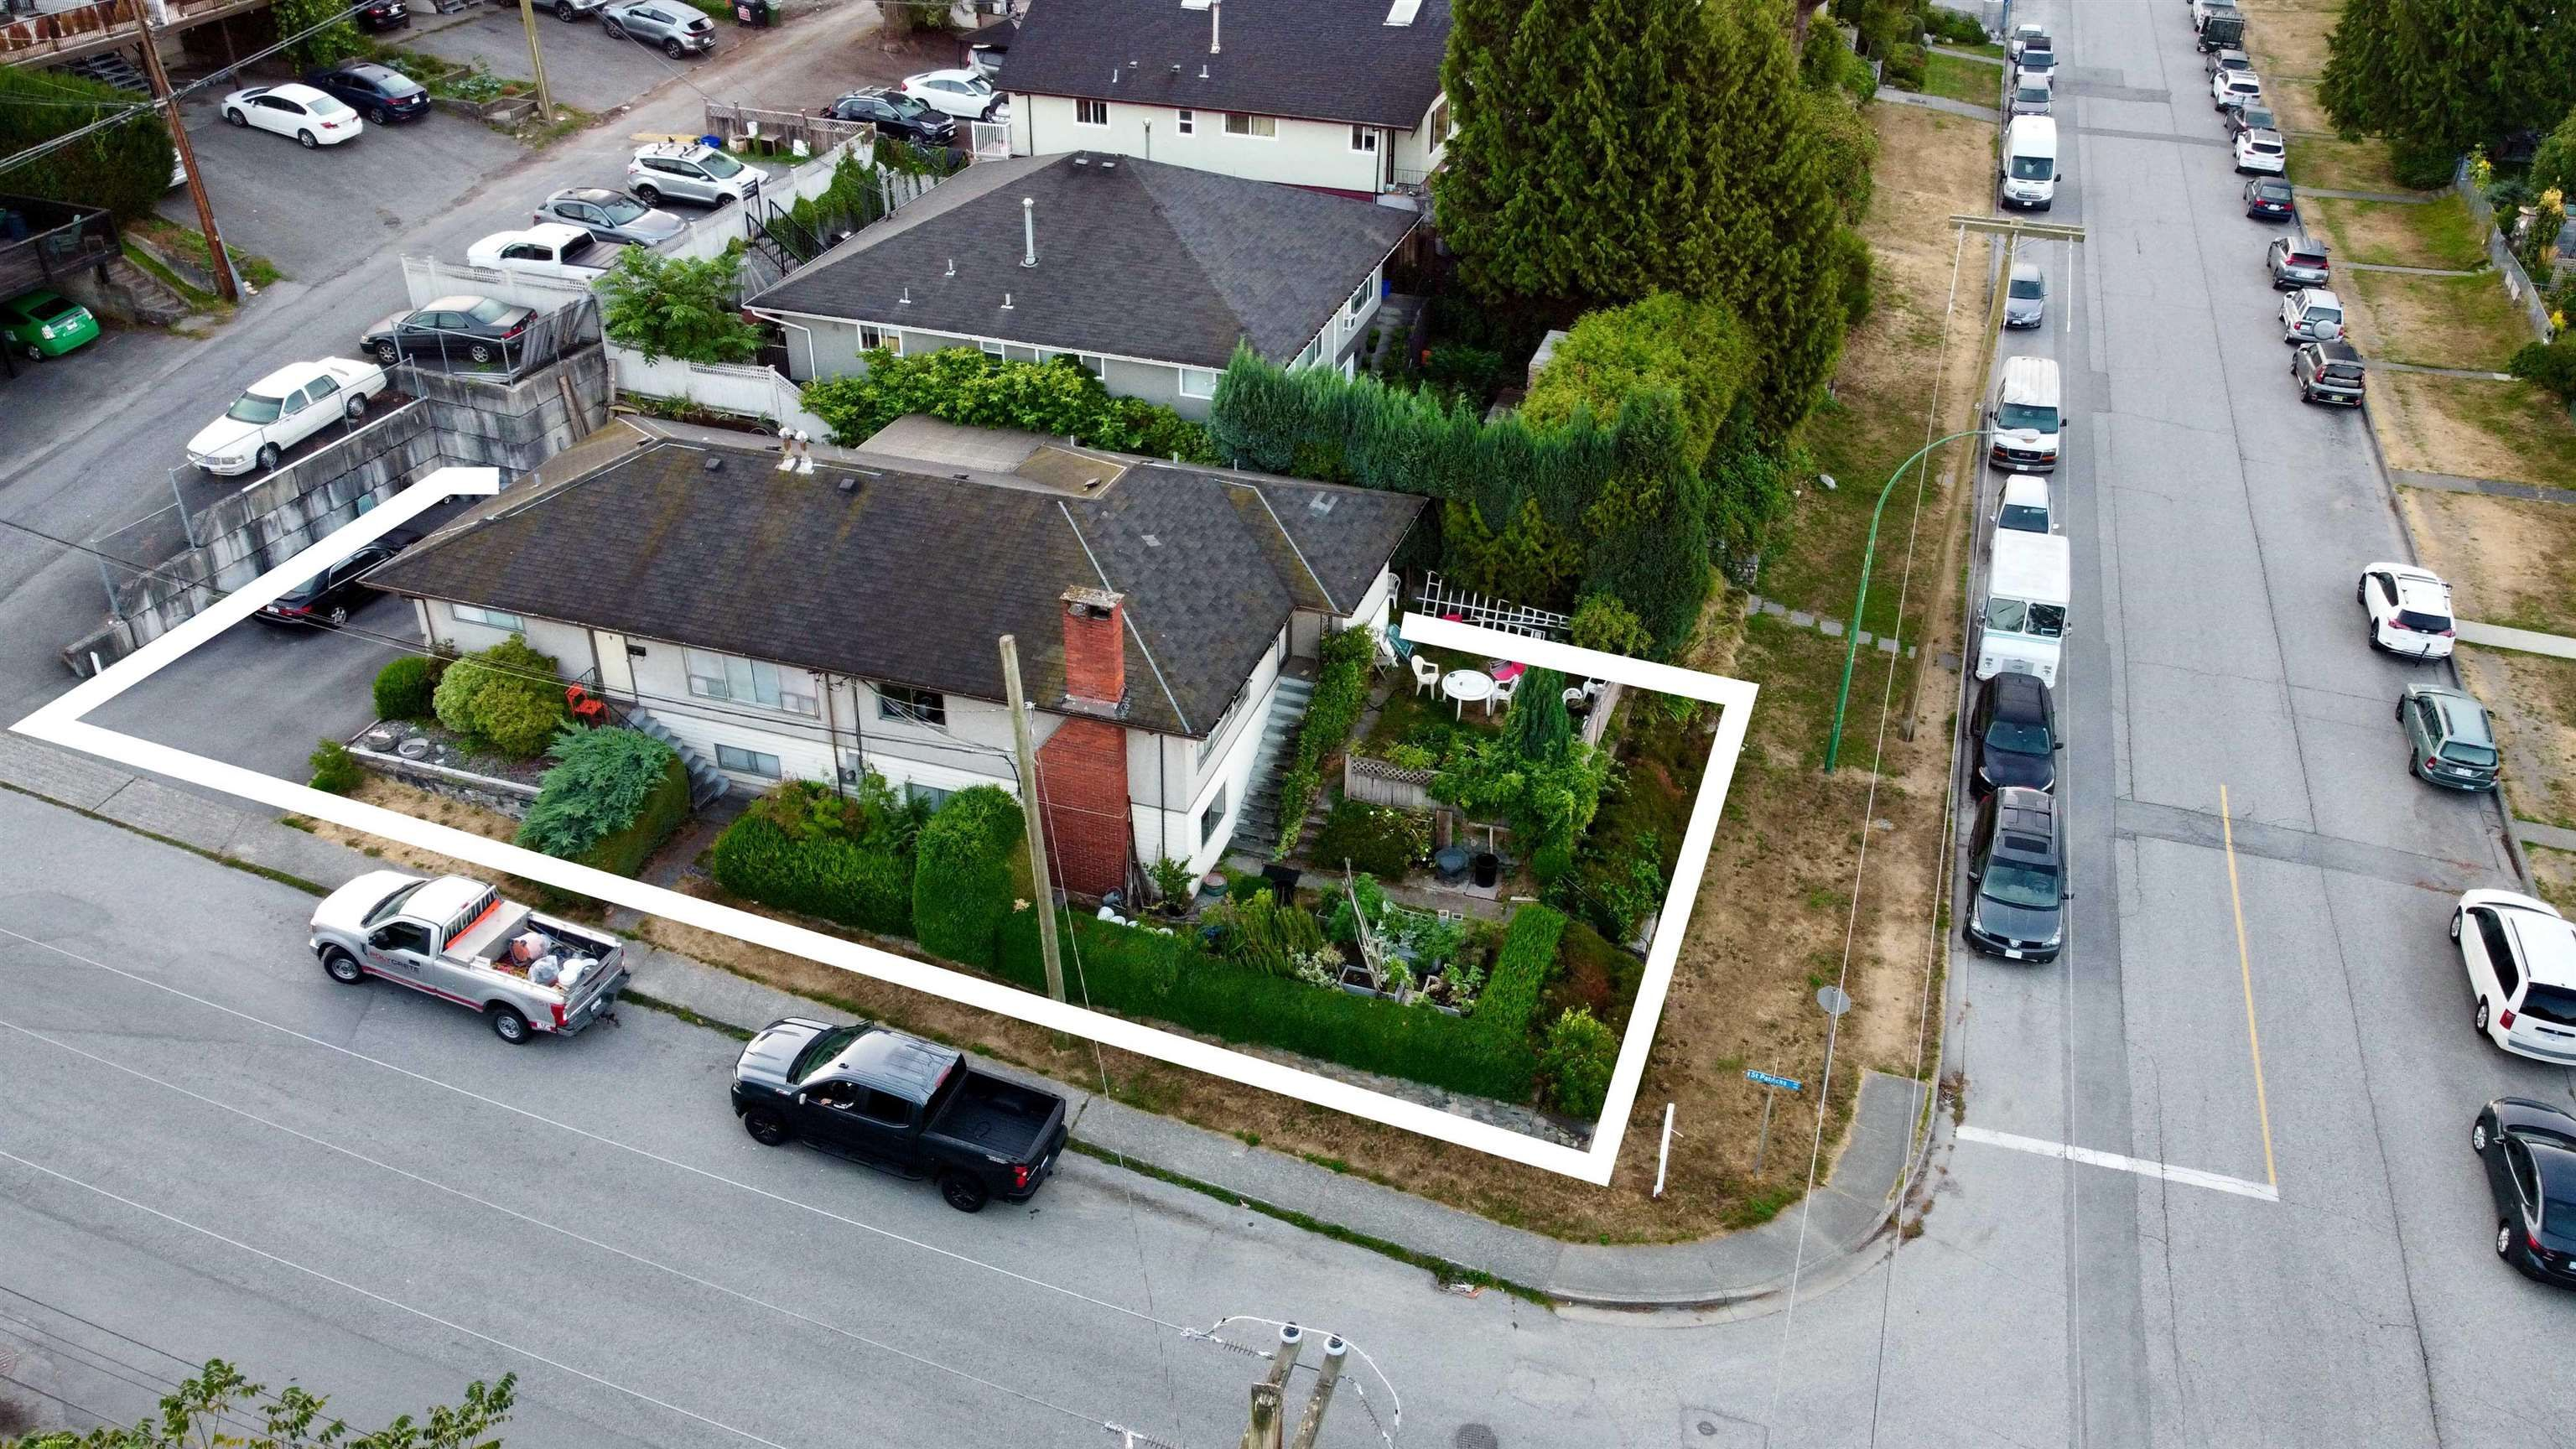 Main Photo: 400 E 1ST Street in North Vancouver: Lower Lonsdale House for sale : MLS®# R2612536